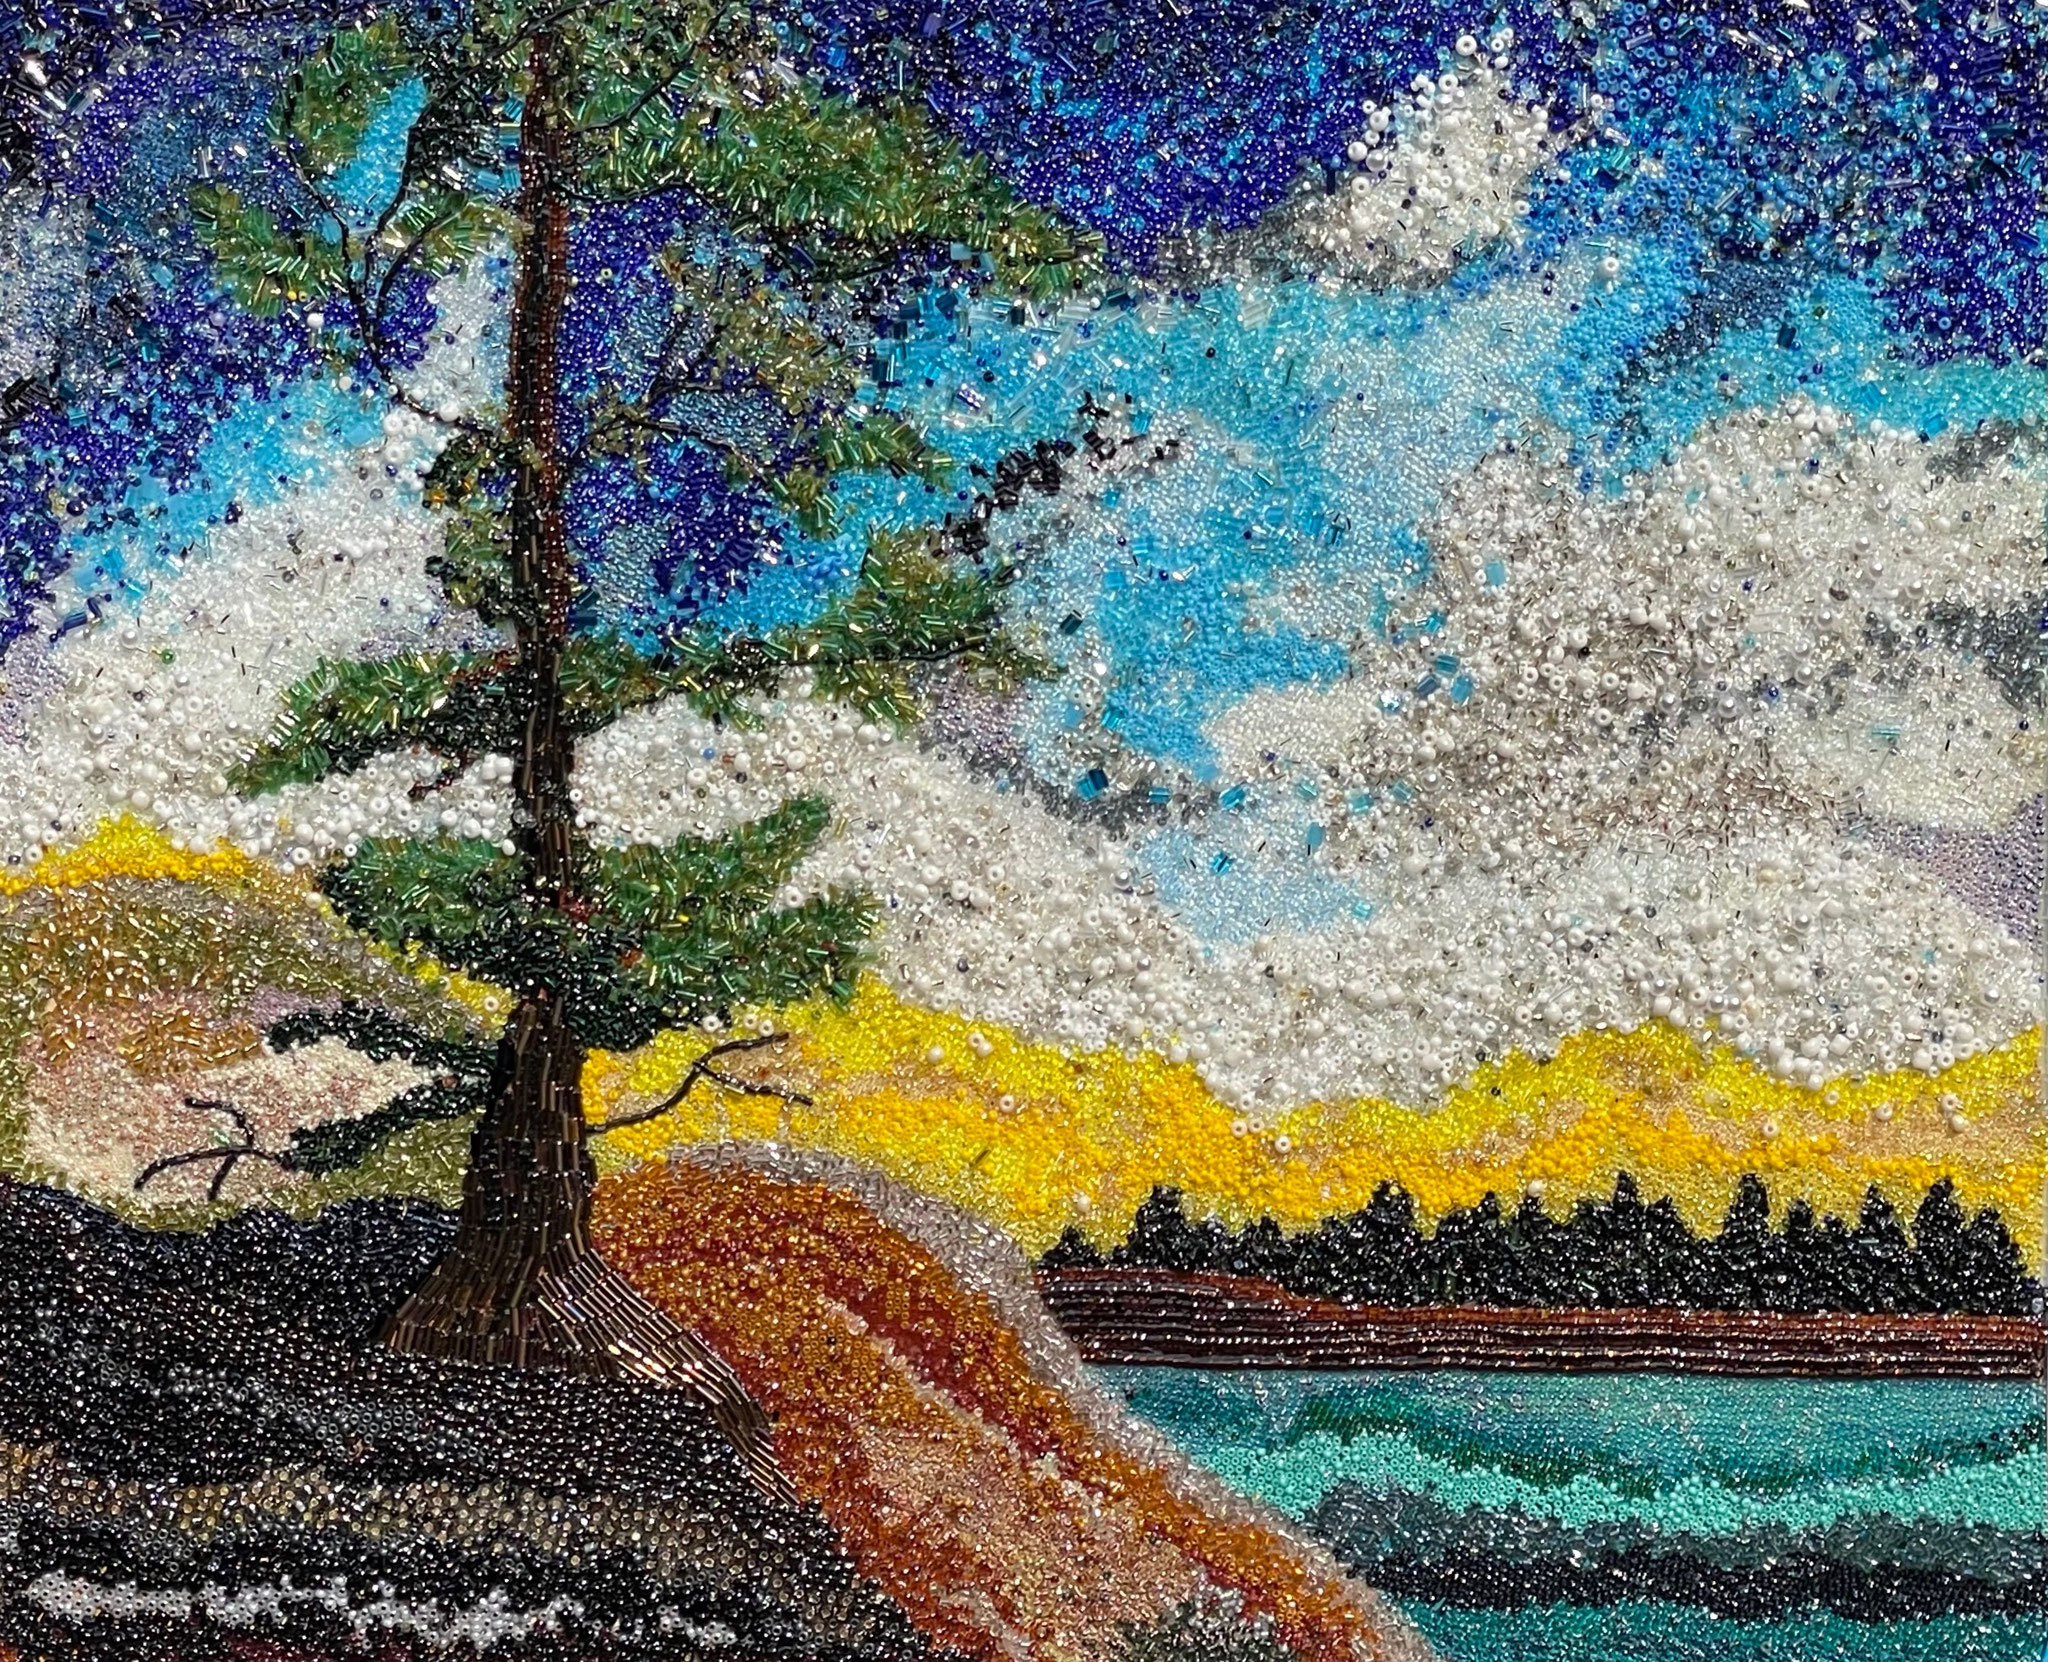 NORTHERN SPARKLE 17.7 x 21 bead mosaic by Patty Leveille